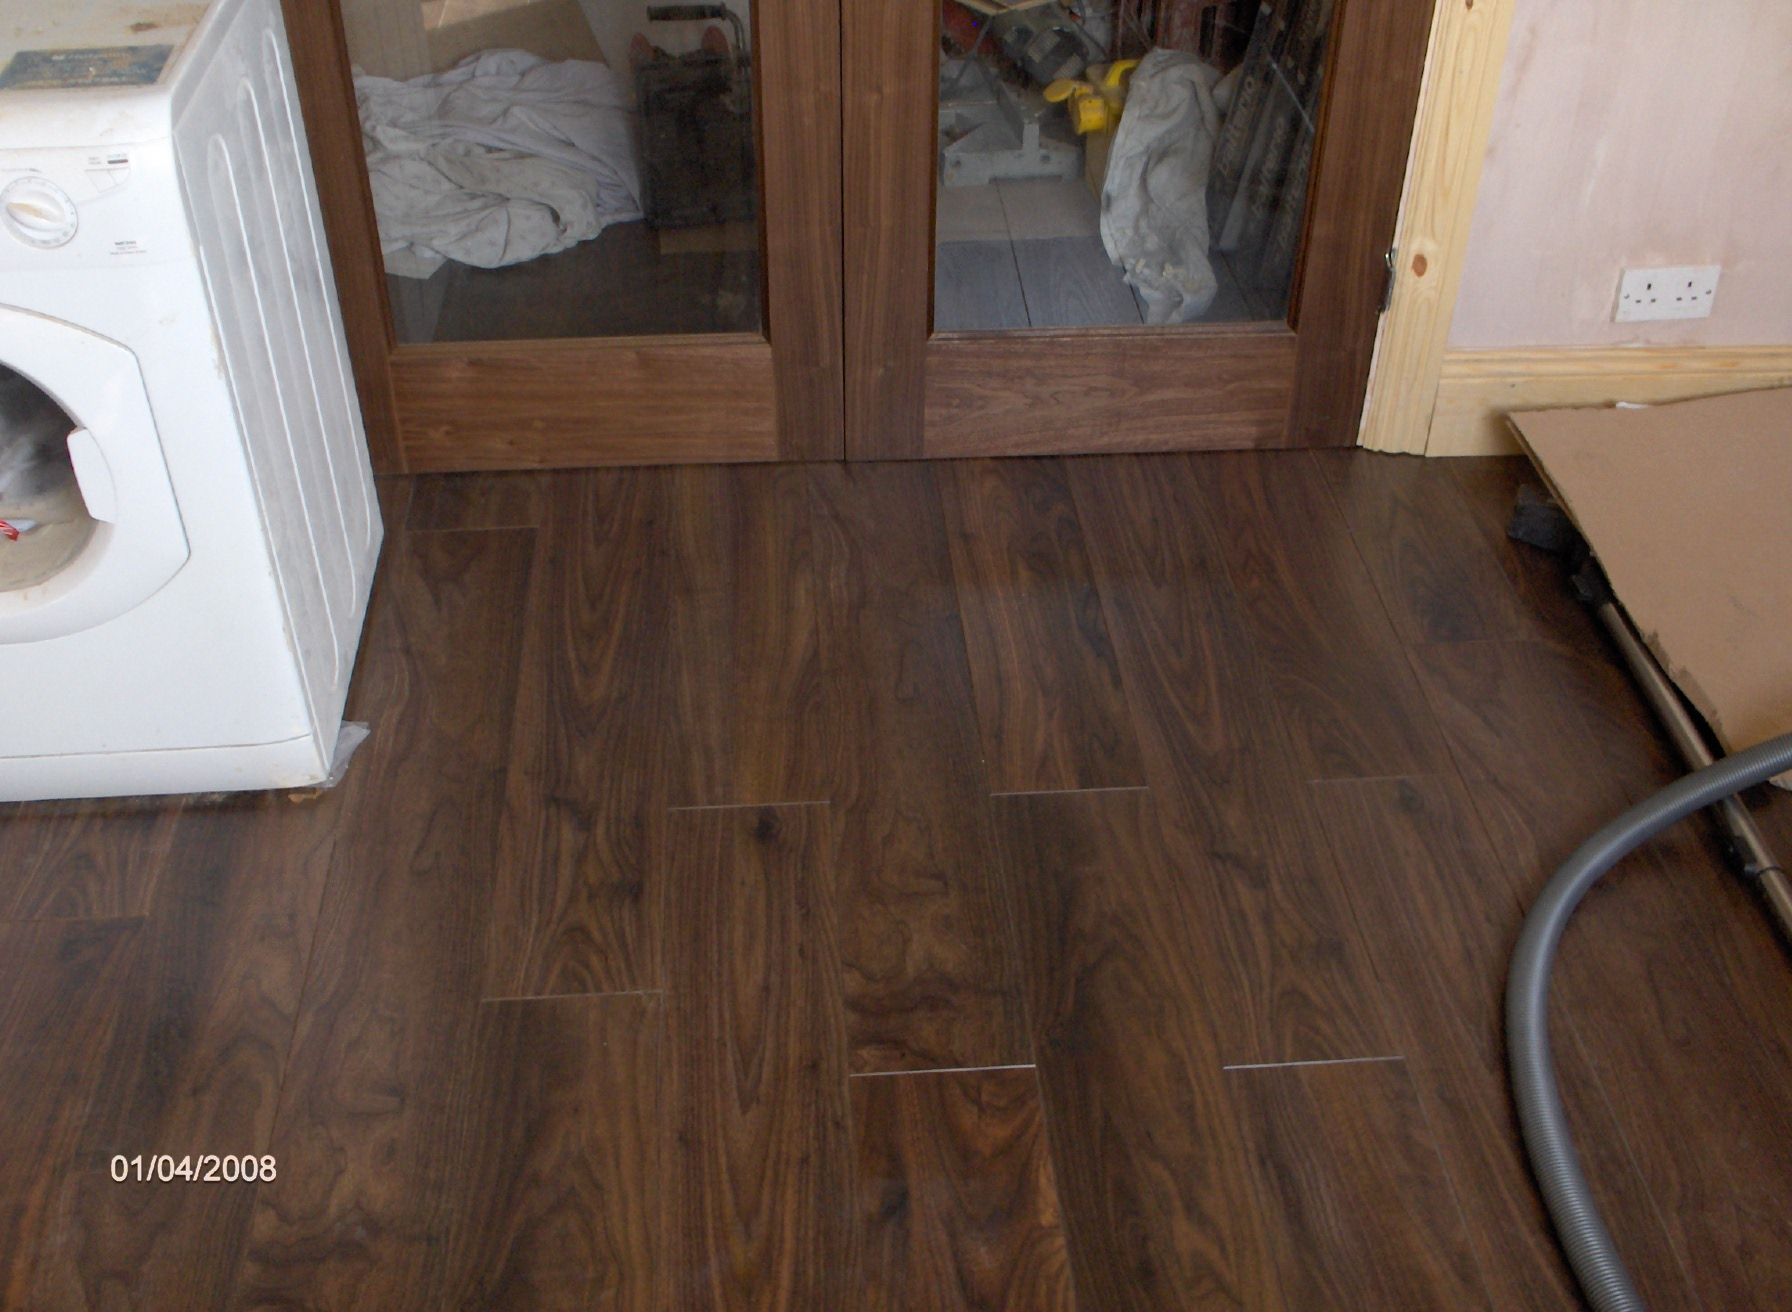 renovation, continued, this is a high quality v-grooved laminate flooring with an acoustic 25db sound proof underlay, really beautiful floor, perfect with the wall nut doors. pleanty of light coming through,